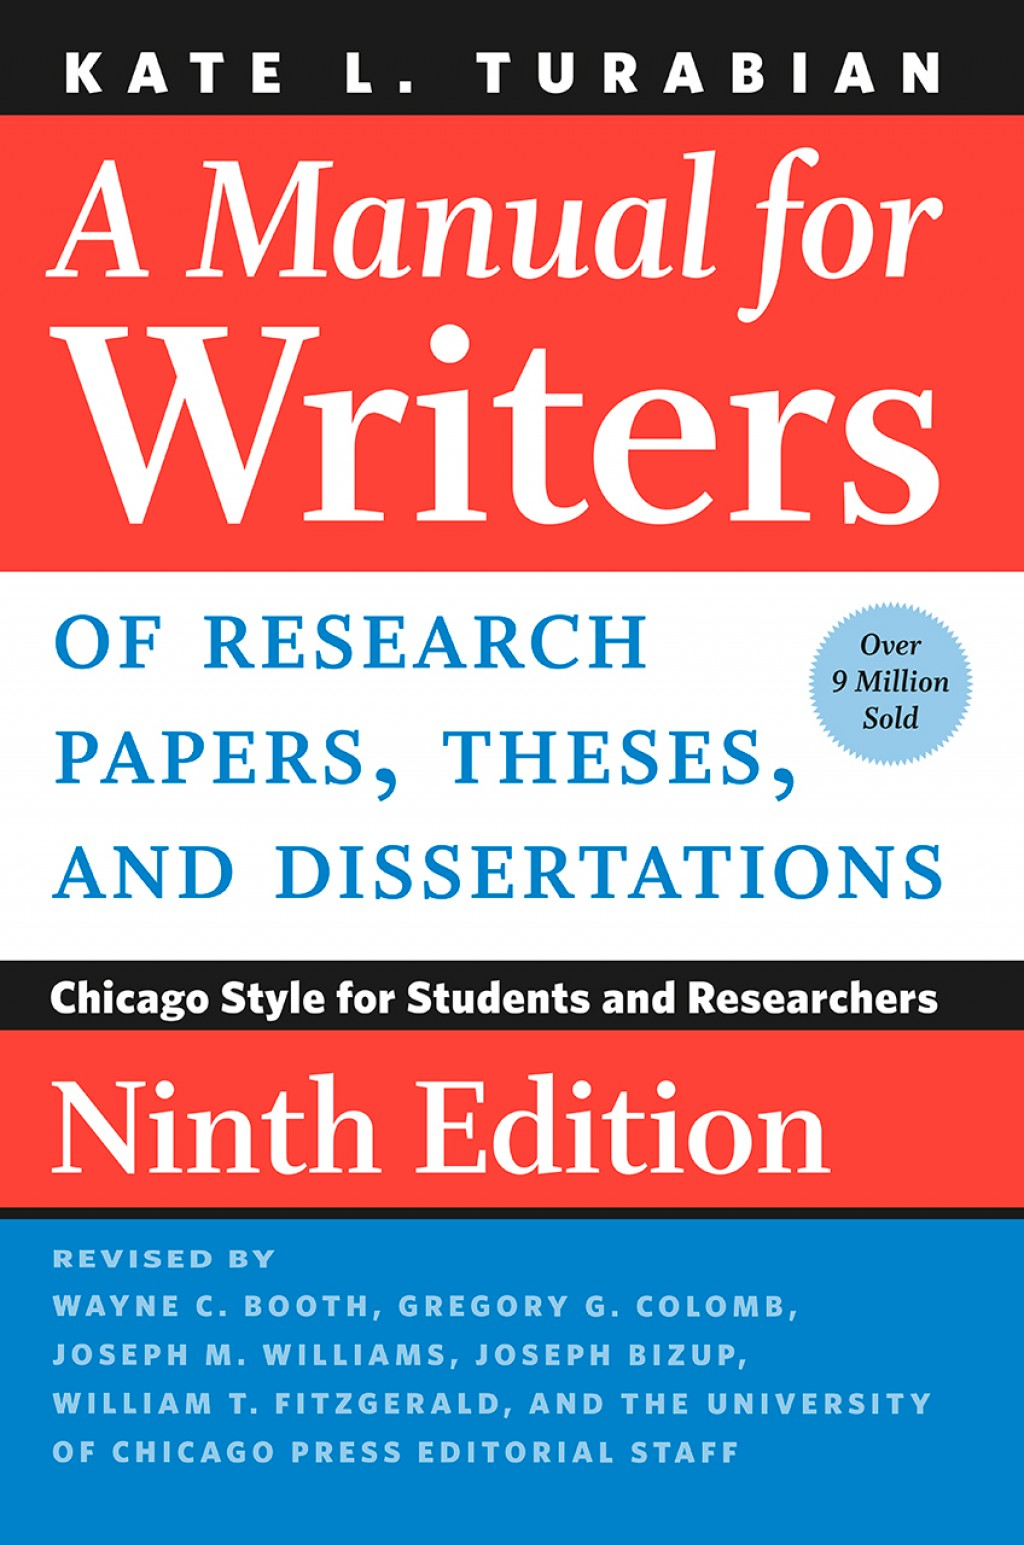 001 Manual For Writers Of Researchs Theses And Dissertations Sensational A Research Papers Ed. 8 8th Edition Ninth Pdf Large